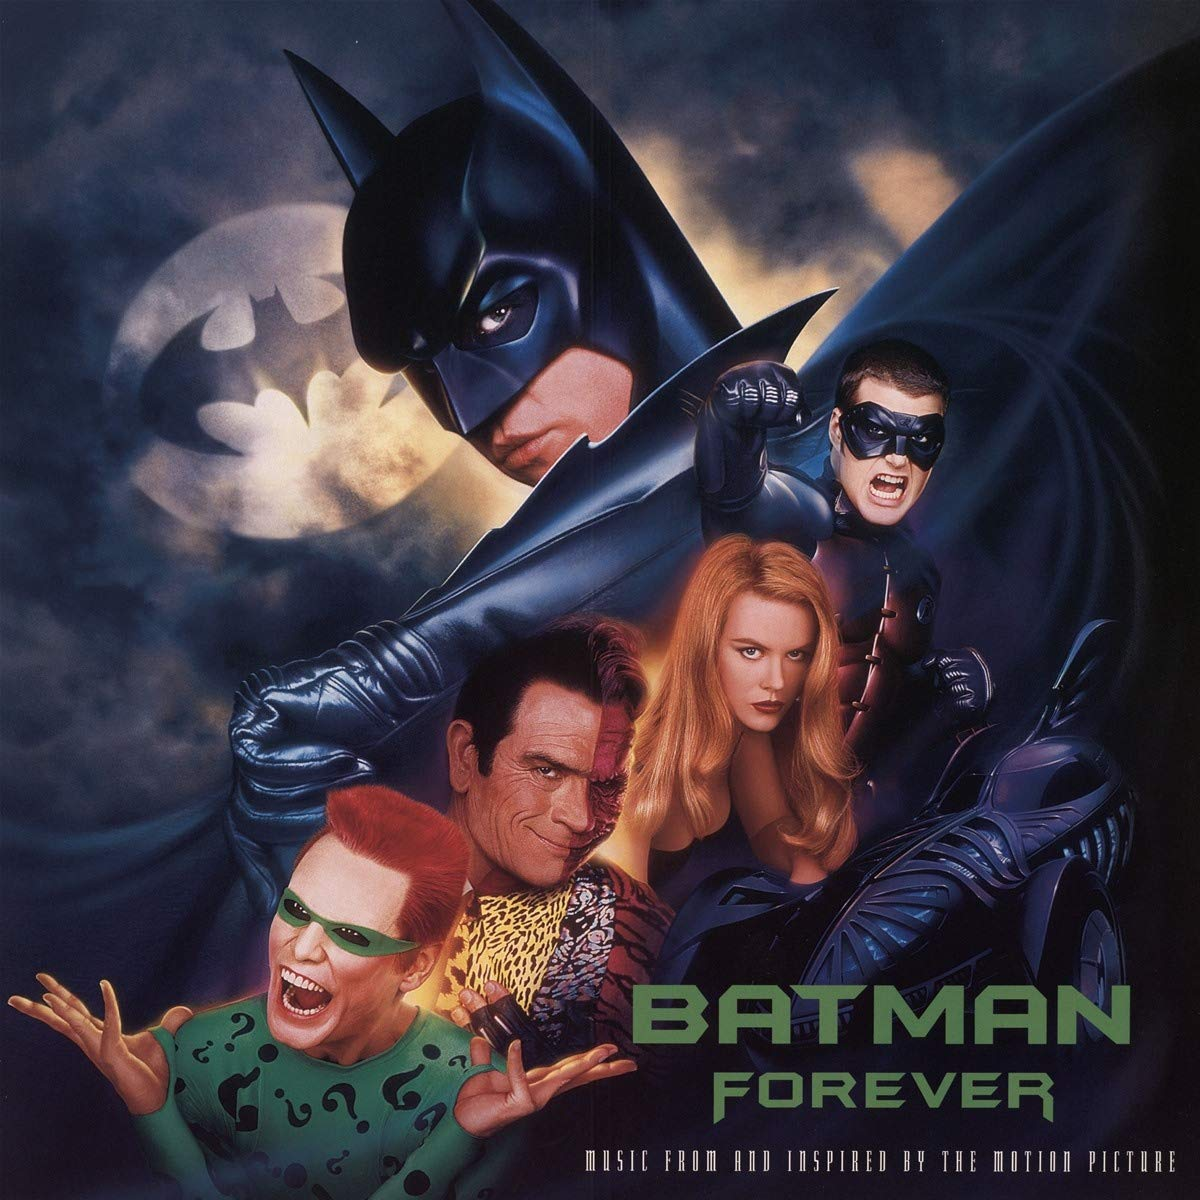 Soundtrack - Vinyl Batman Forever: Music From The Motion Picture